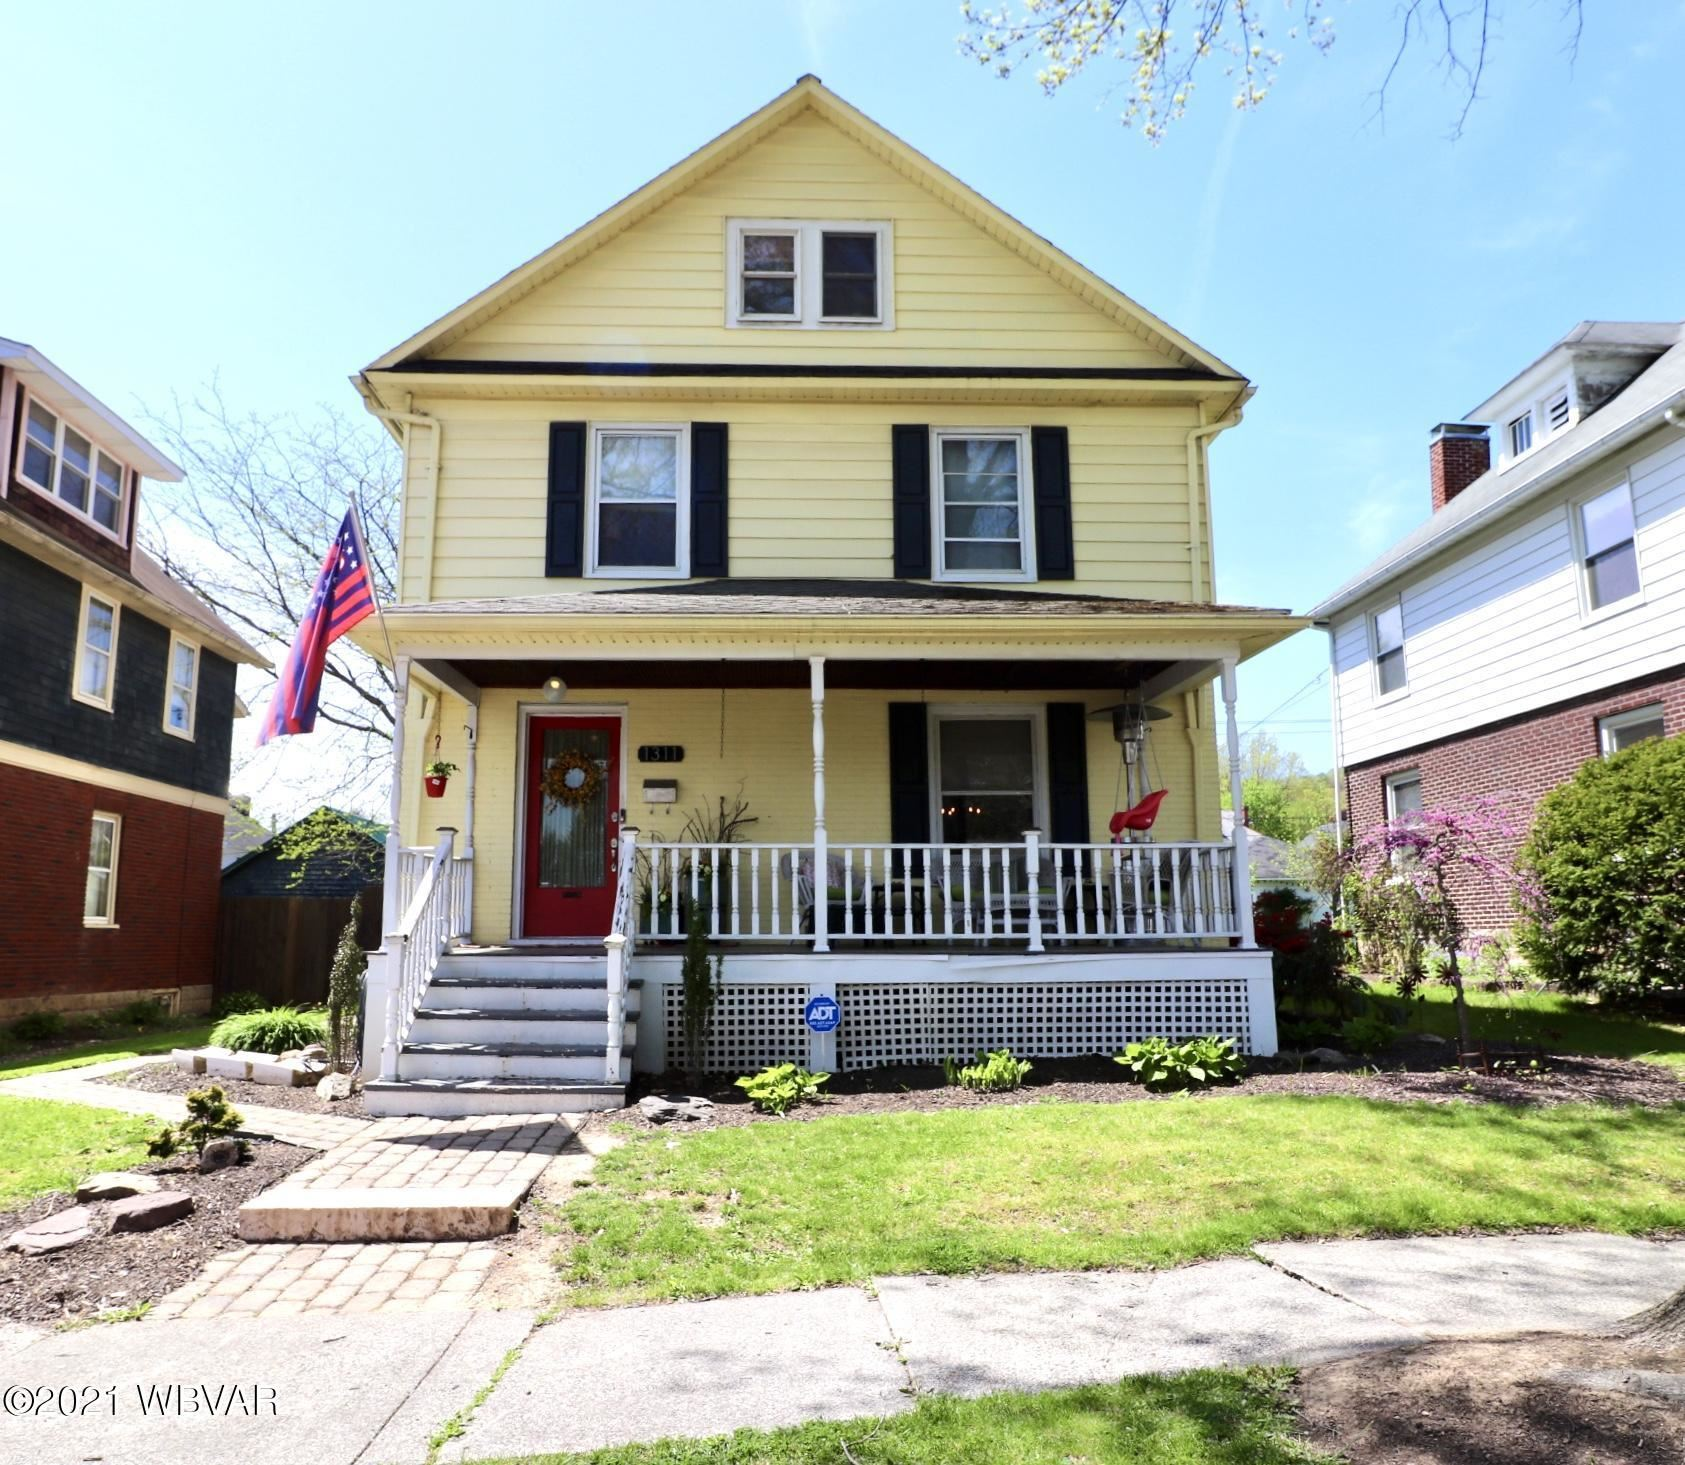 1311 CHERRY STREET, Williamsport, PA 17701 - #: WB-92440